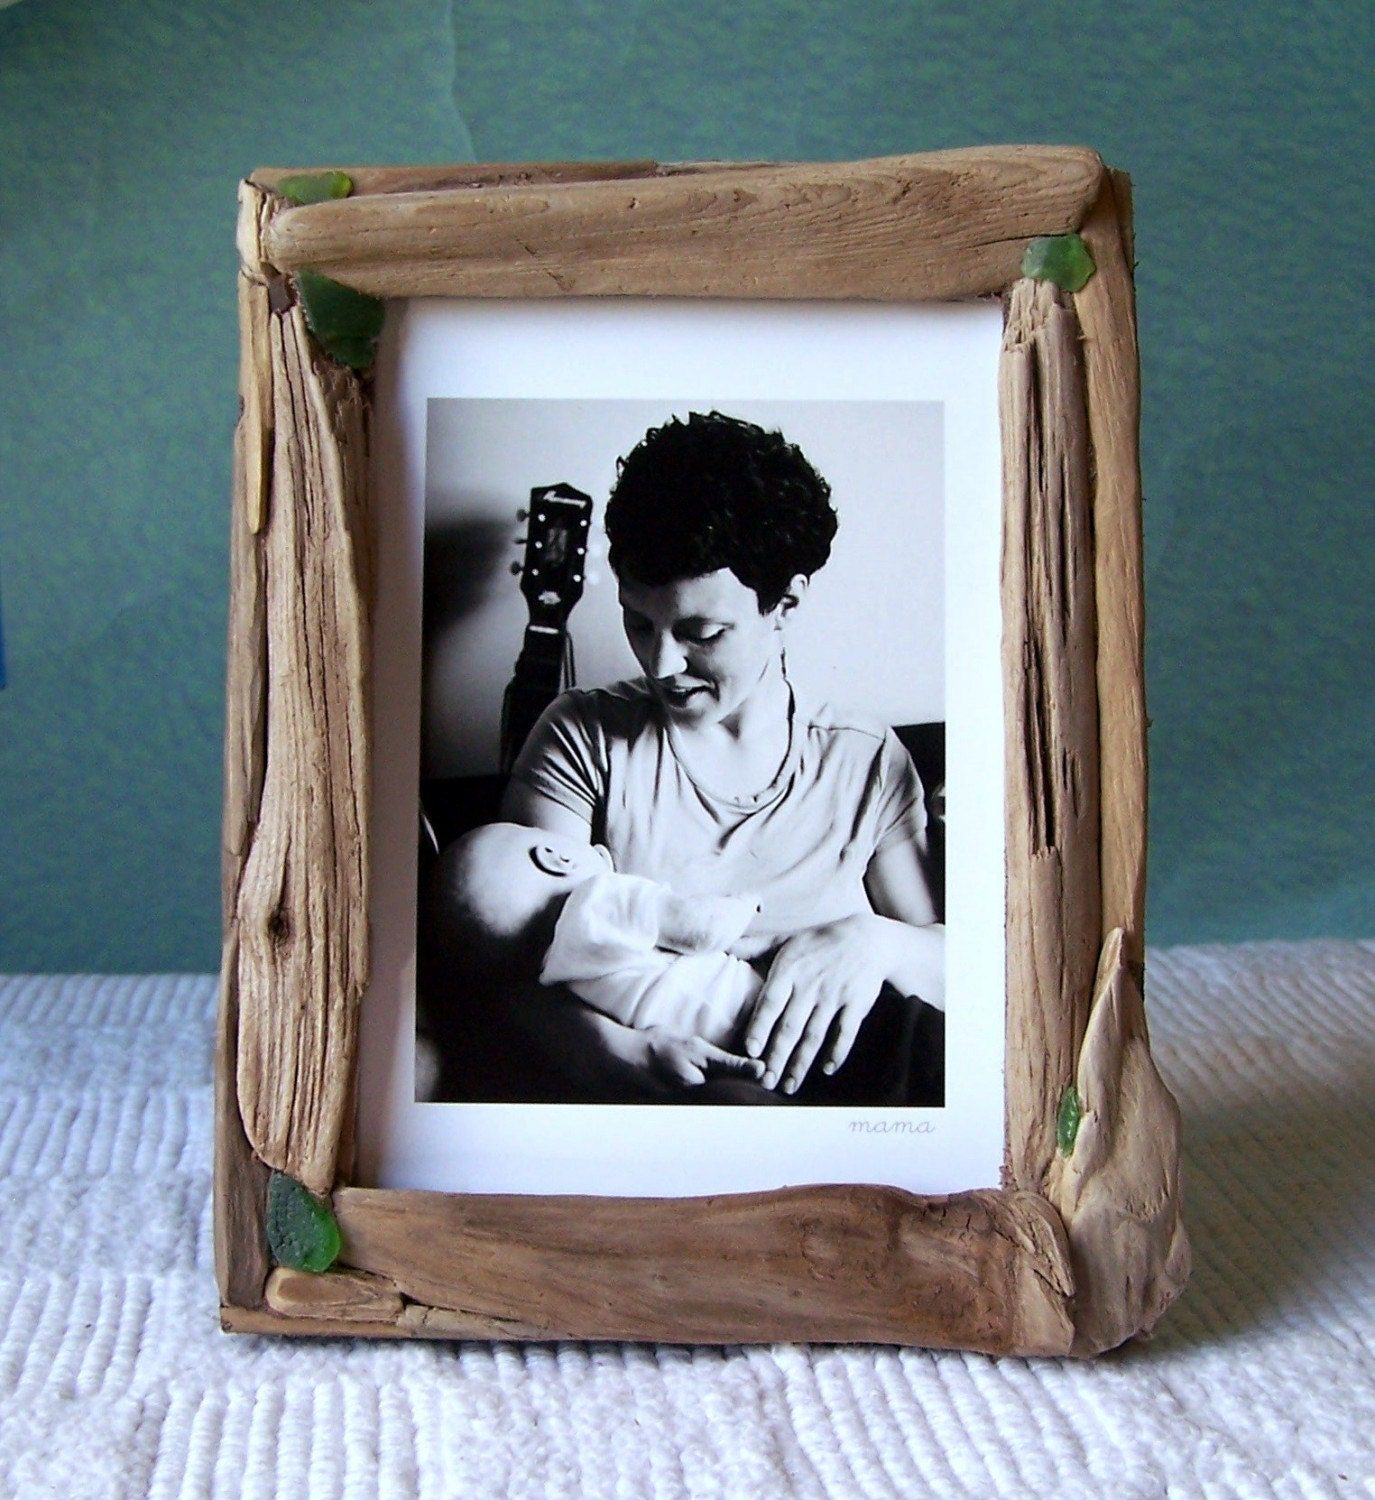 driftwood picture frame 5 x 7 weathered green. Black Bedroom Furniture Sets. Home Design Ideas